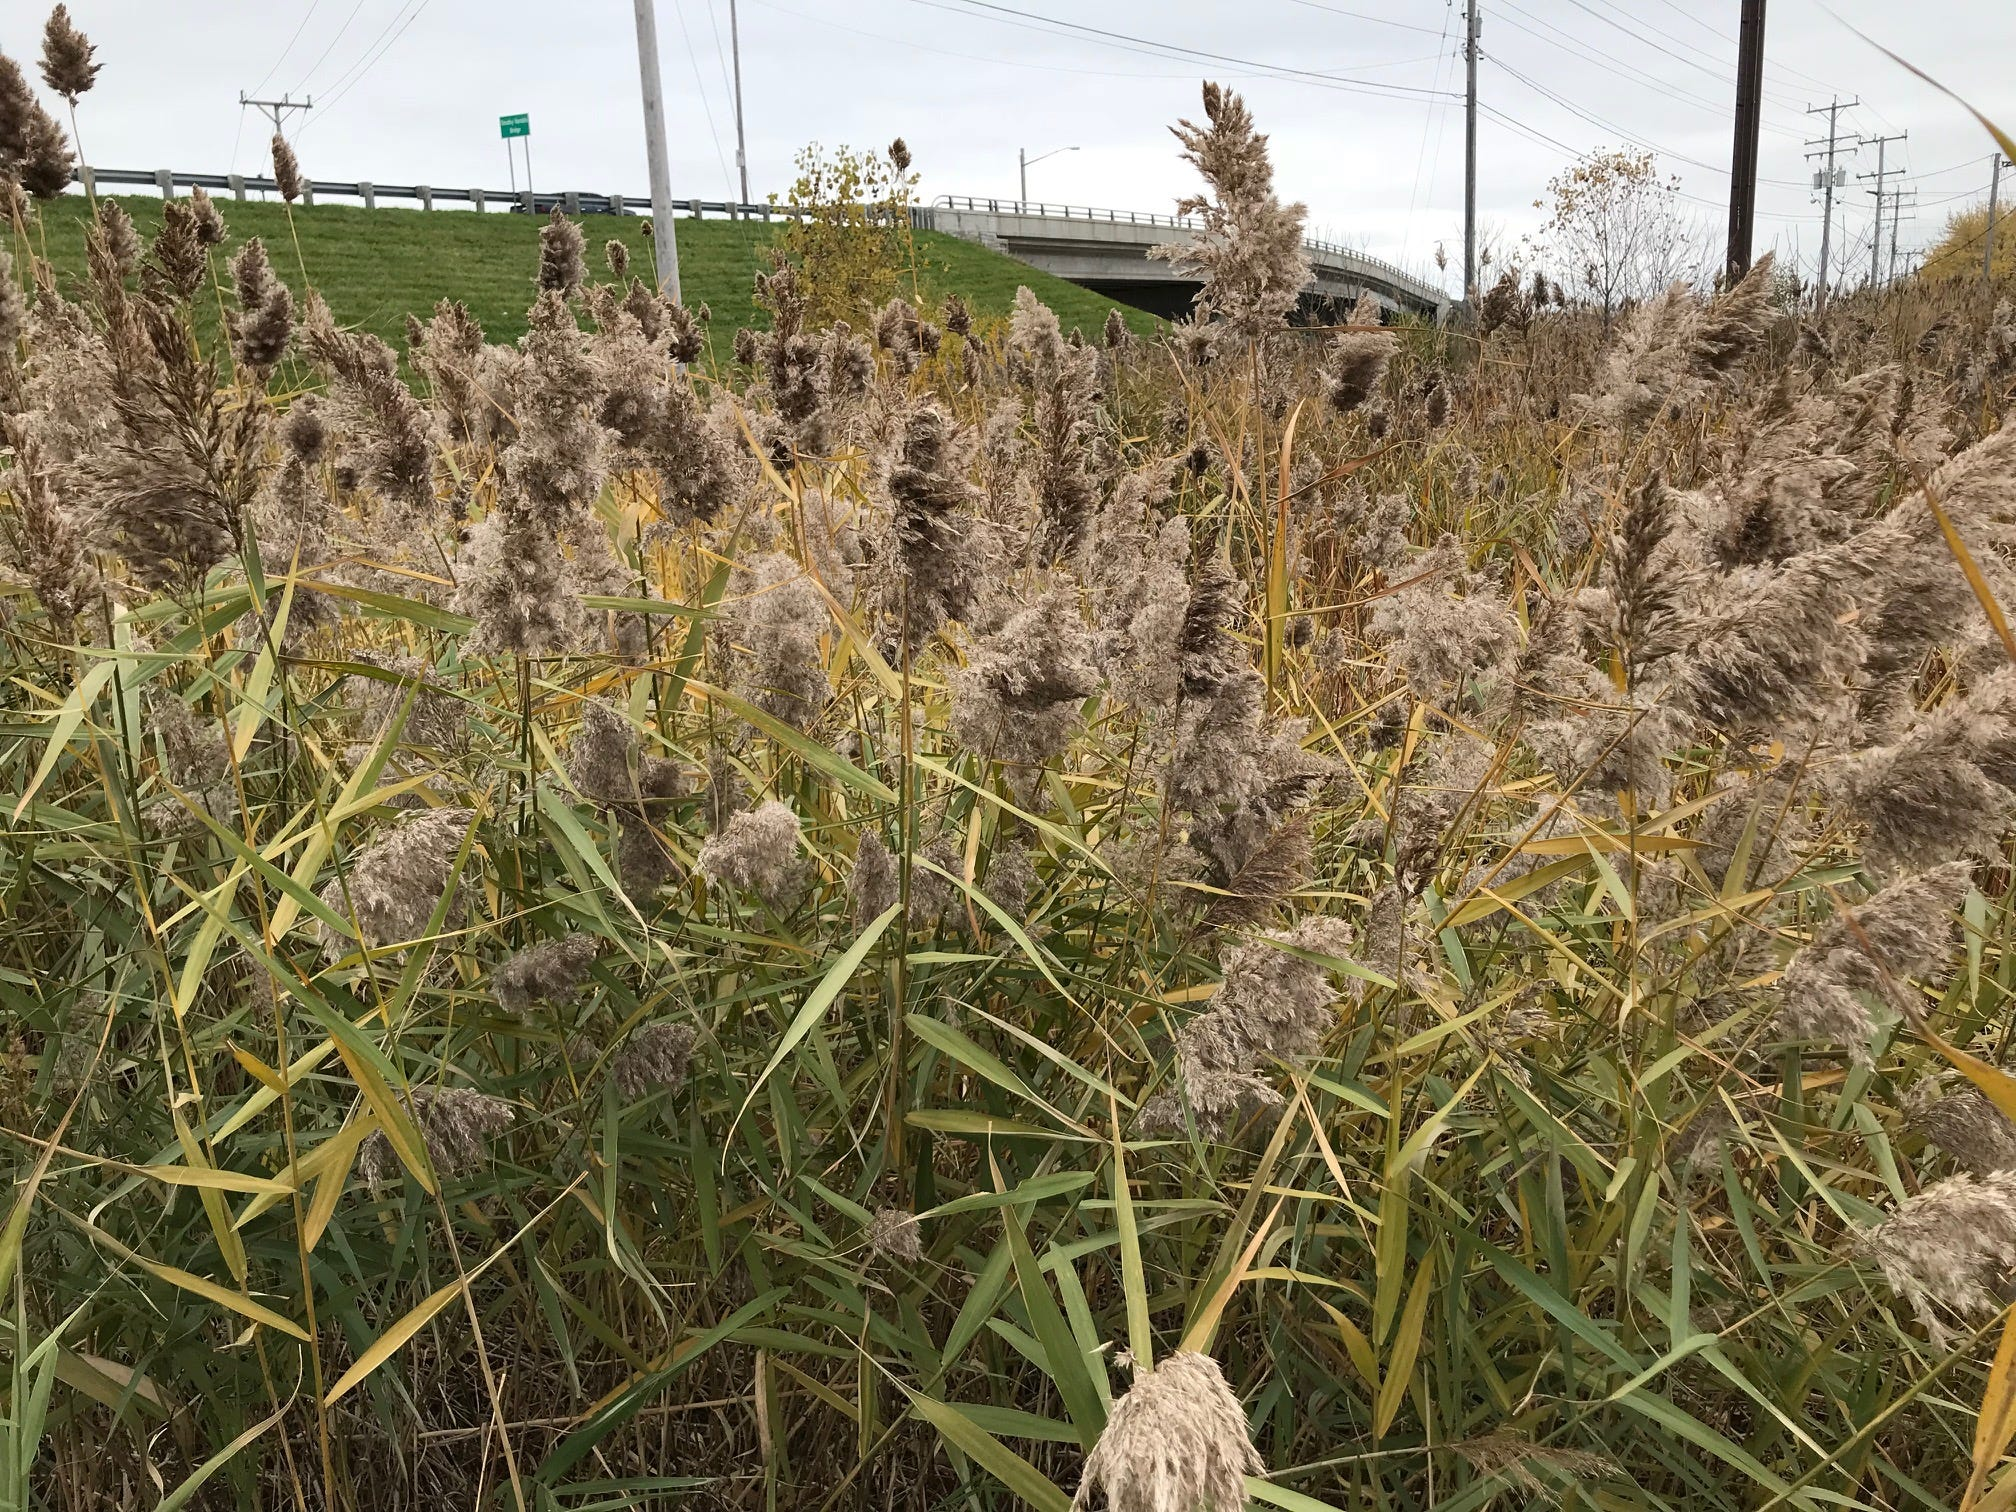 A wetland near the Cecil Street overpass in Neenah contains non-native phragmites. They have thick, feather-like seed heads.